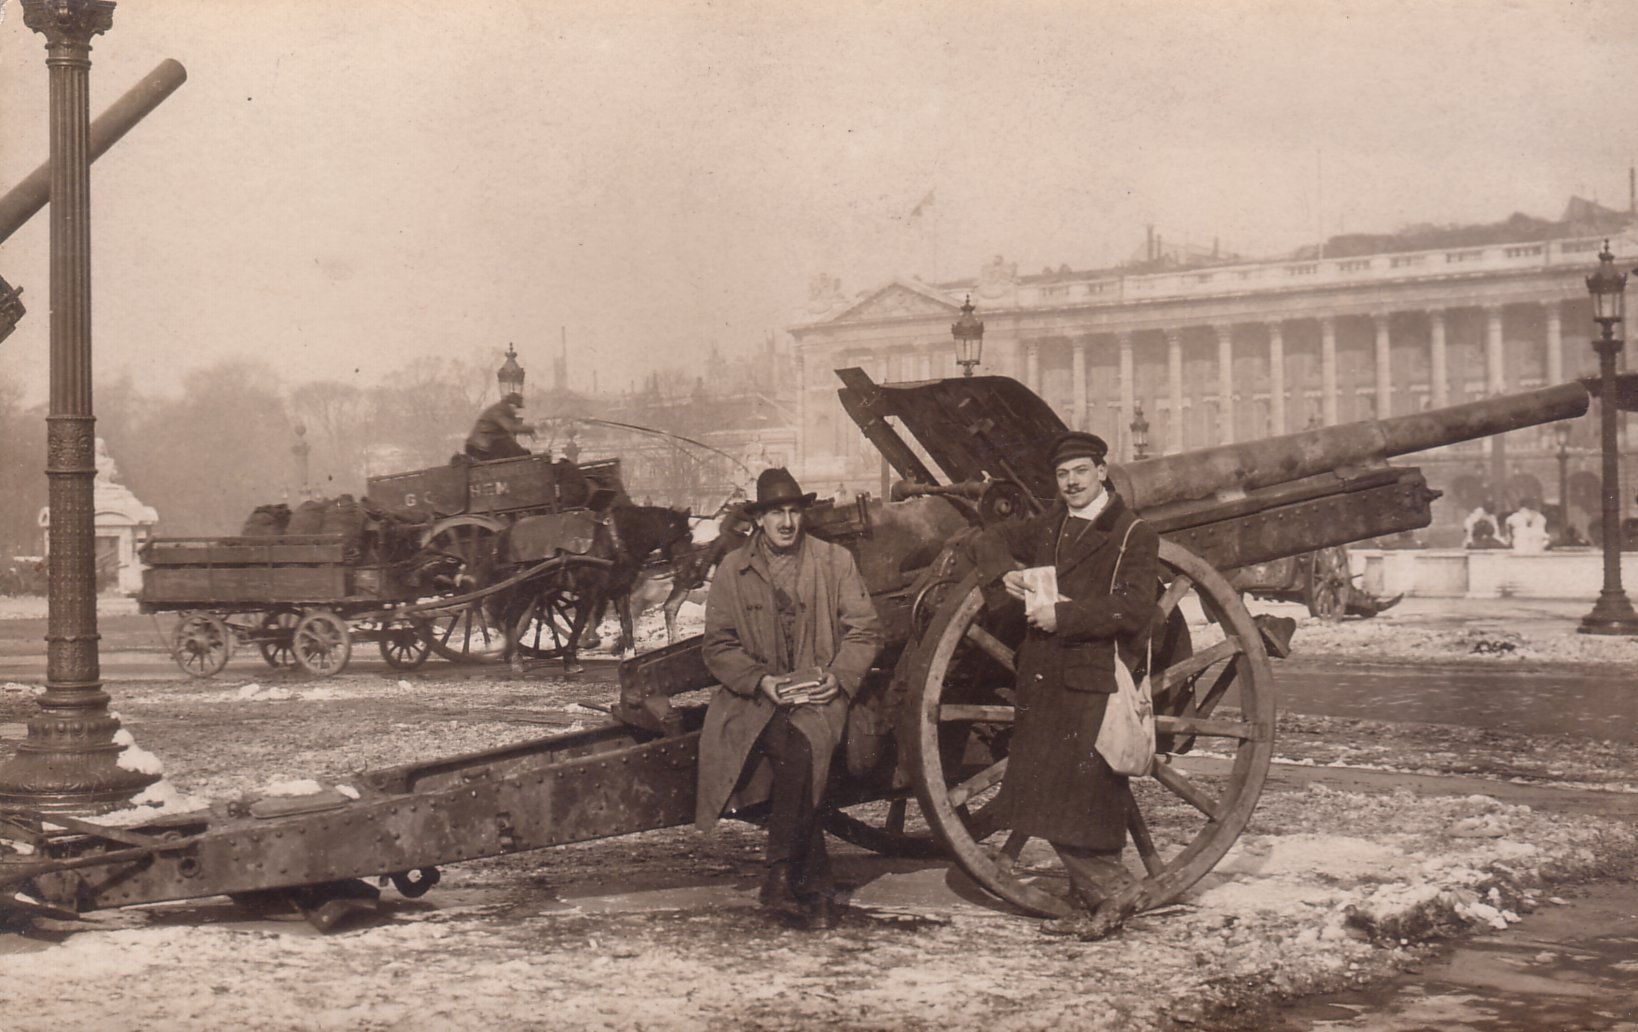 10cm Kanone 1914 captured by the French in Paris